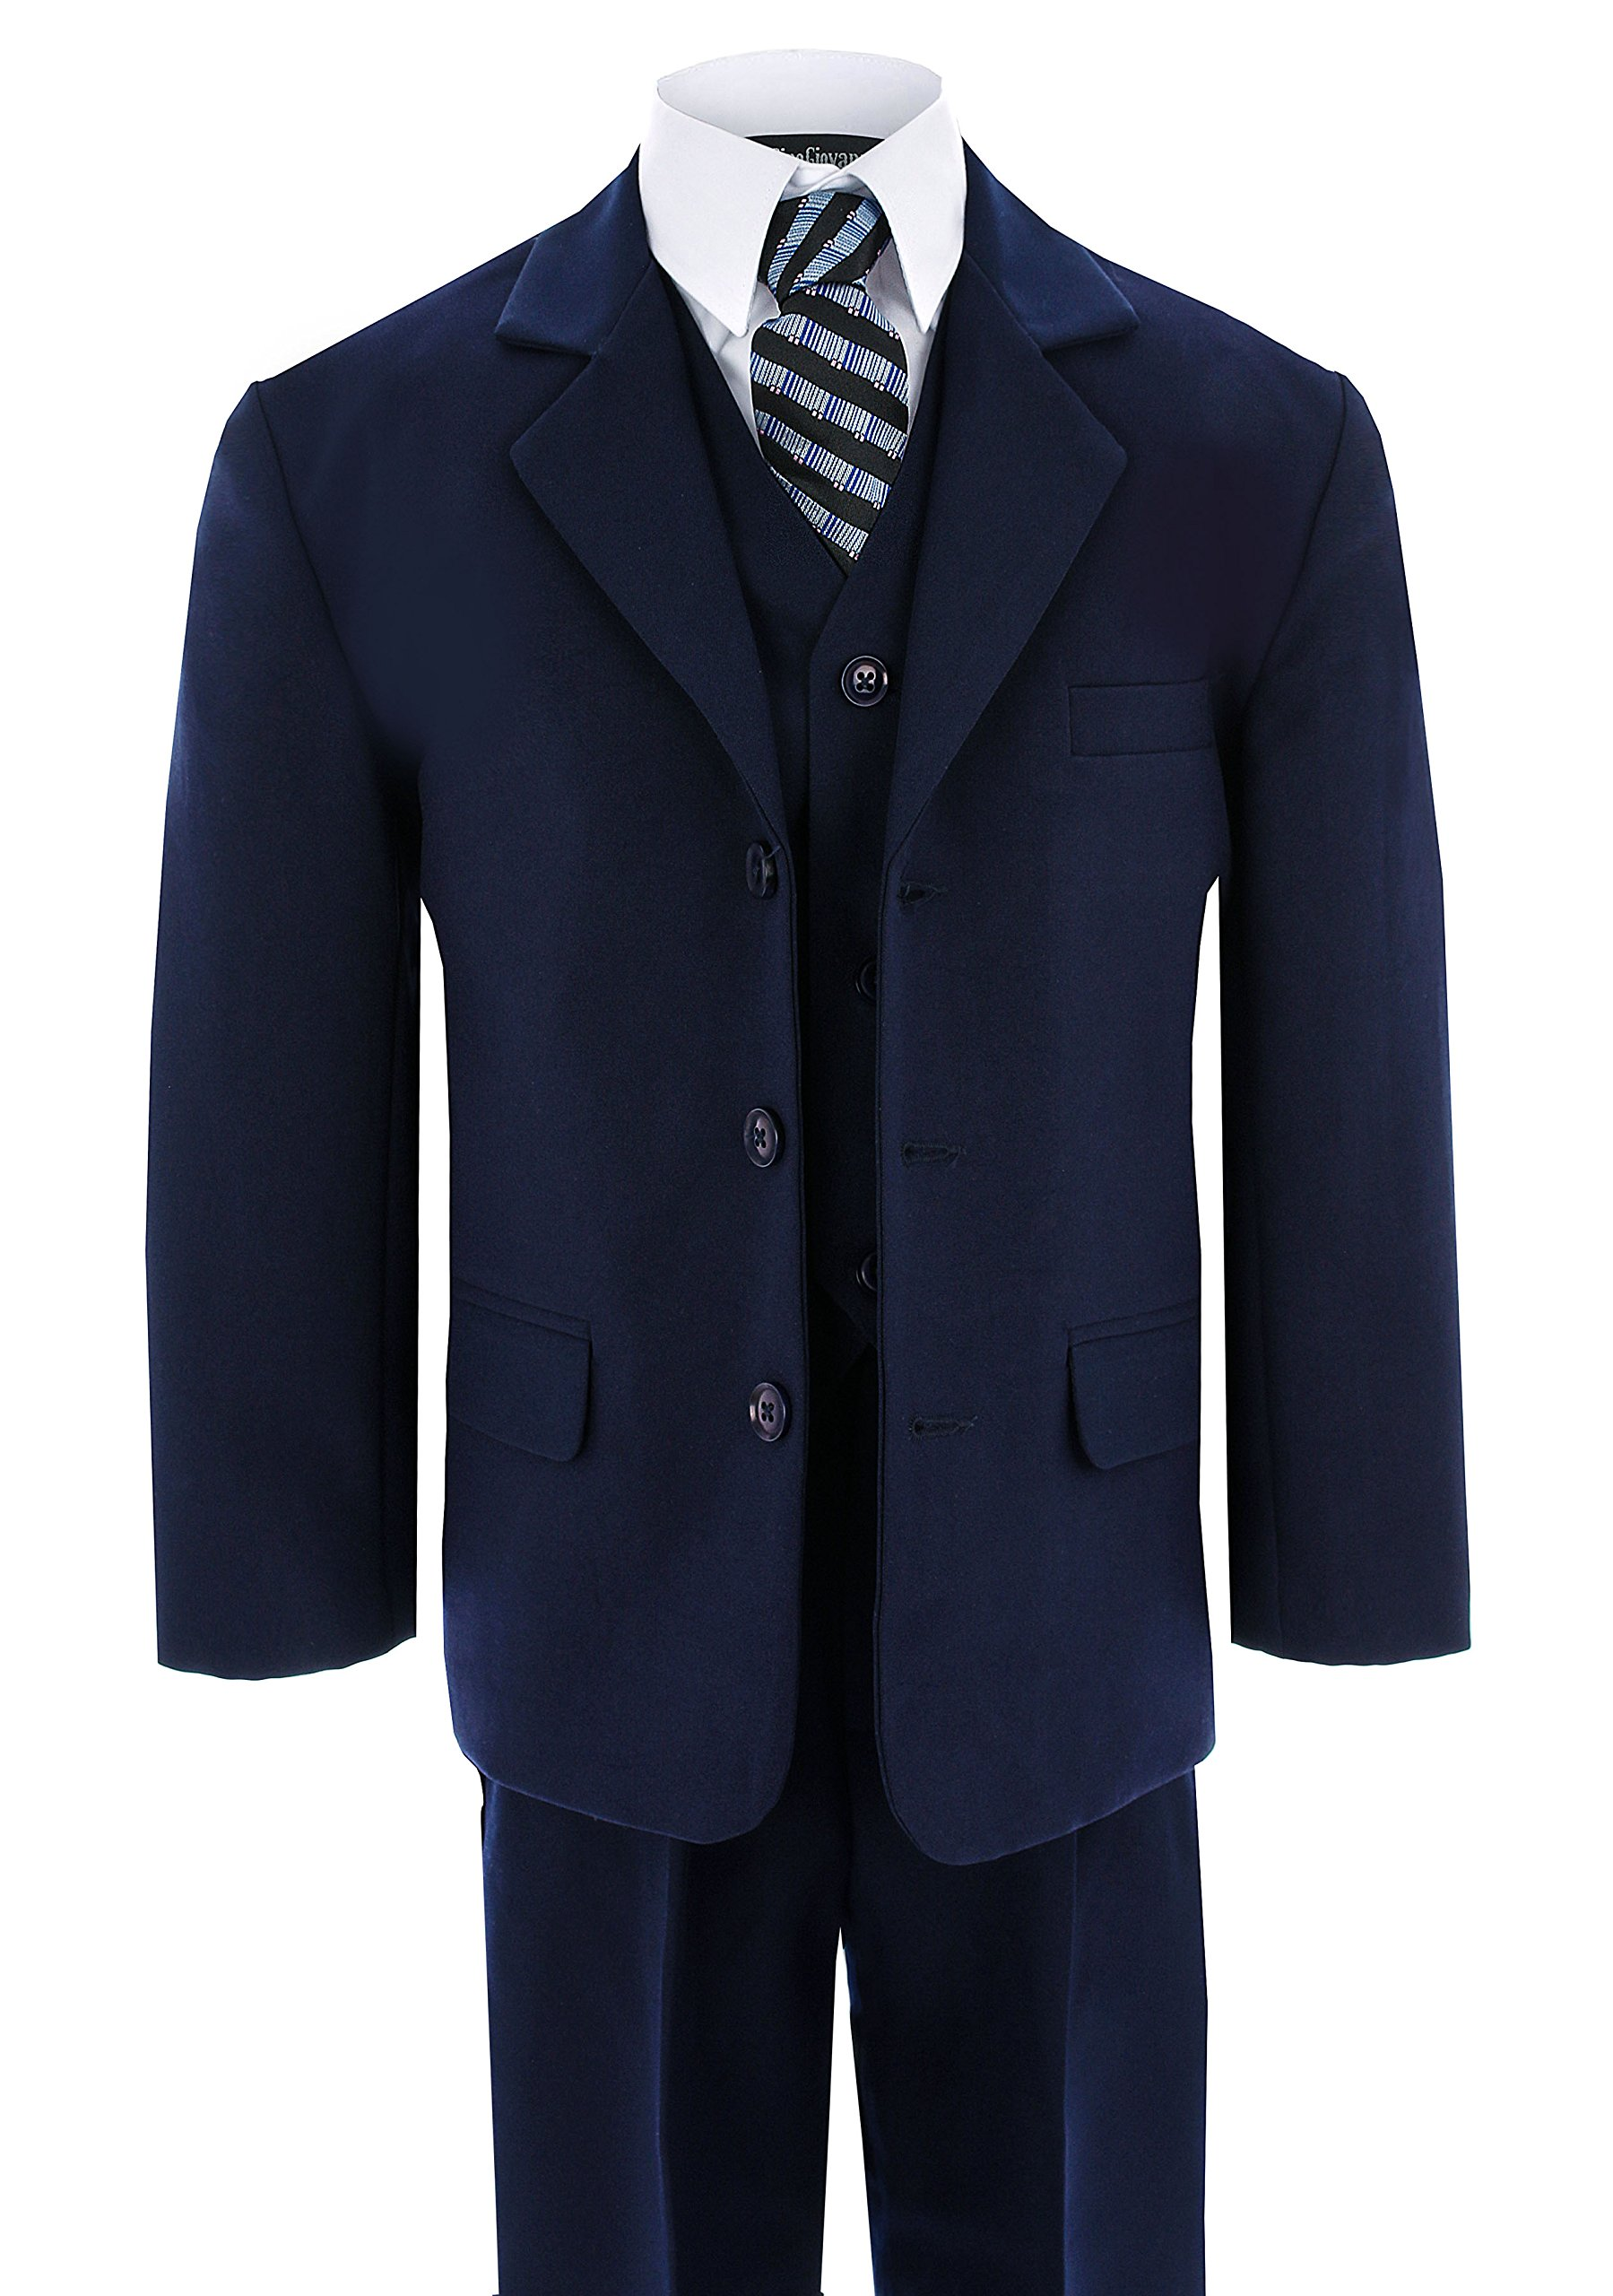 Gino Boys G230 Navy Blue Suit Set from Baby to Teens (3T)